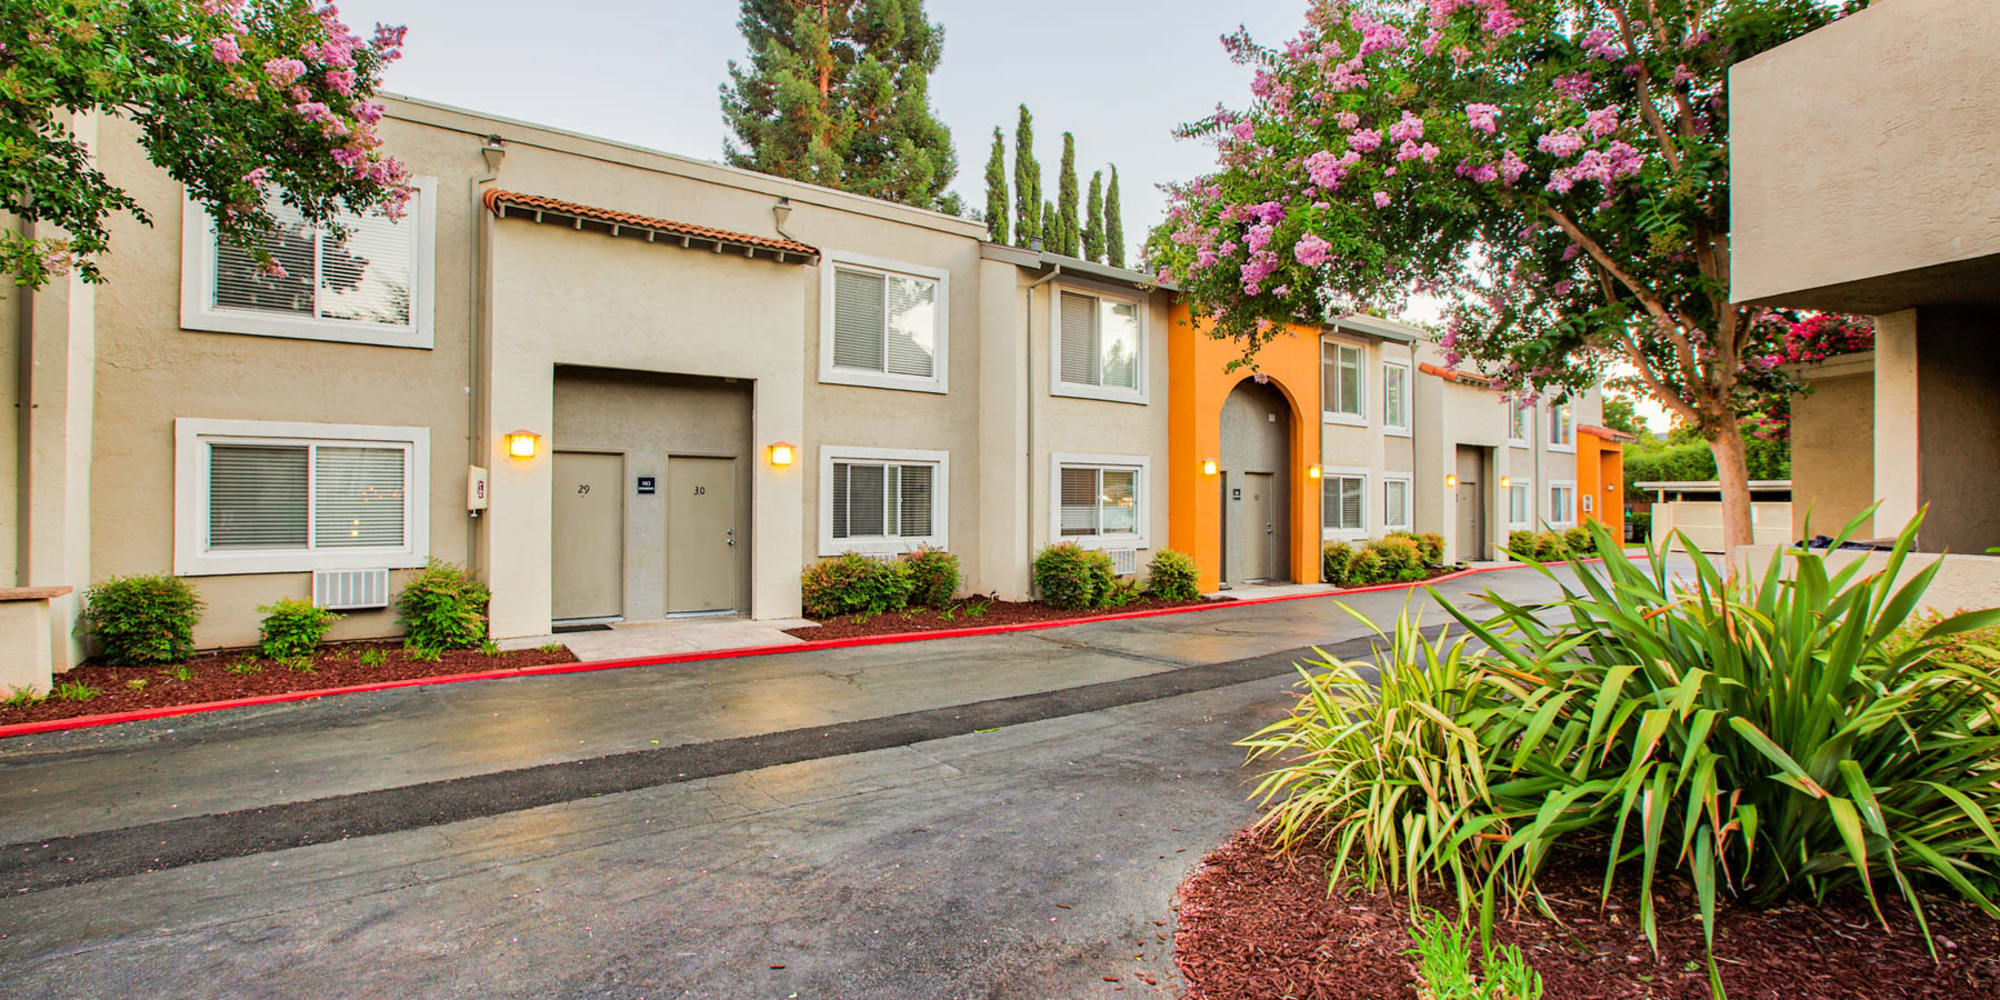 Resident buildings and immaculately maintained grounds at Pleasanton Place Apartment Homes in Pleasanton, California